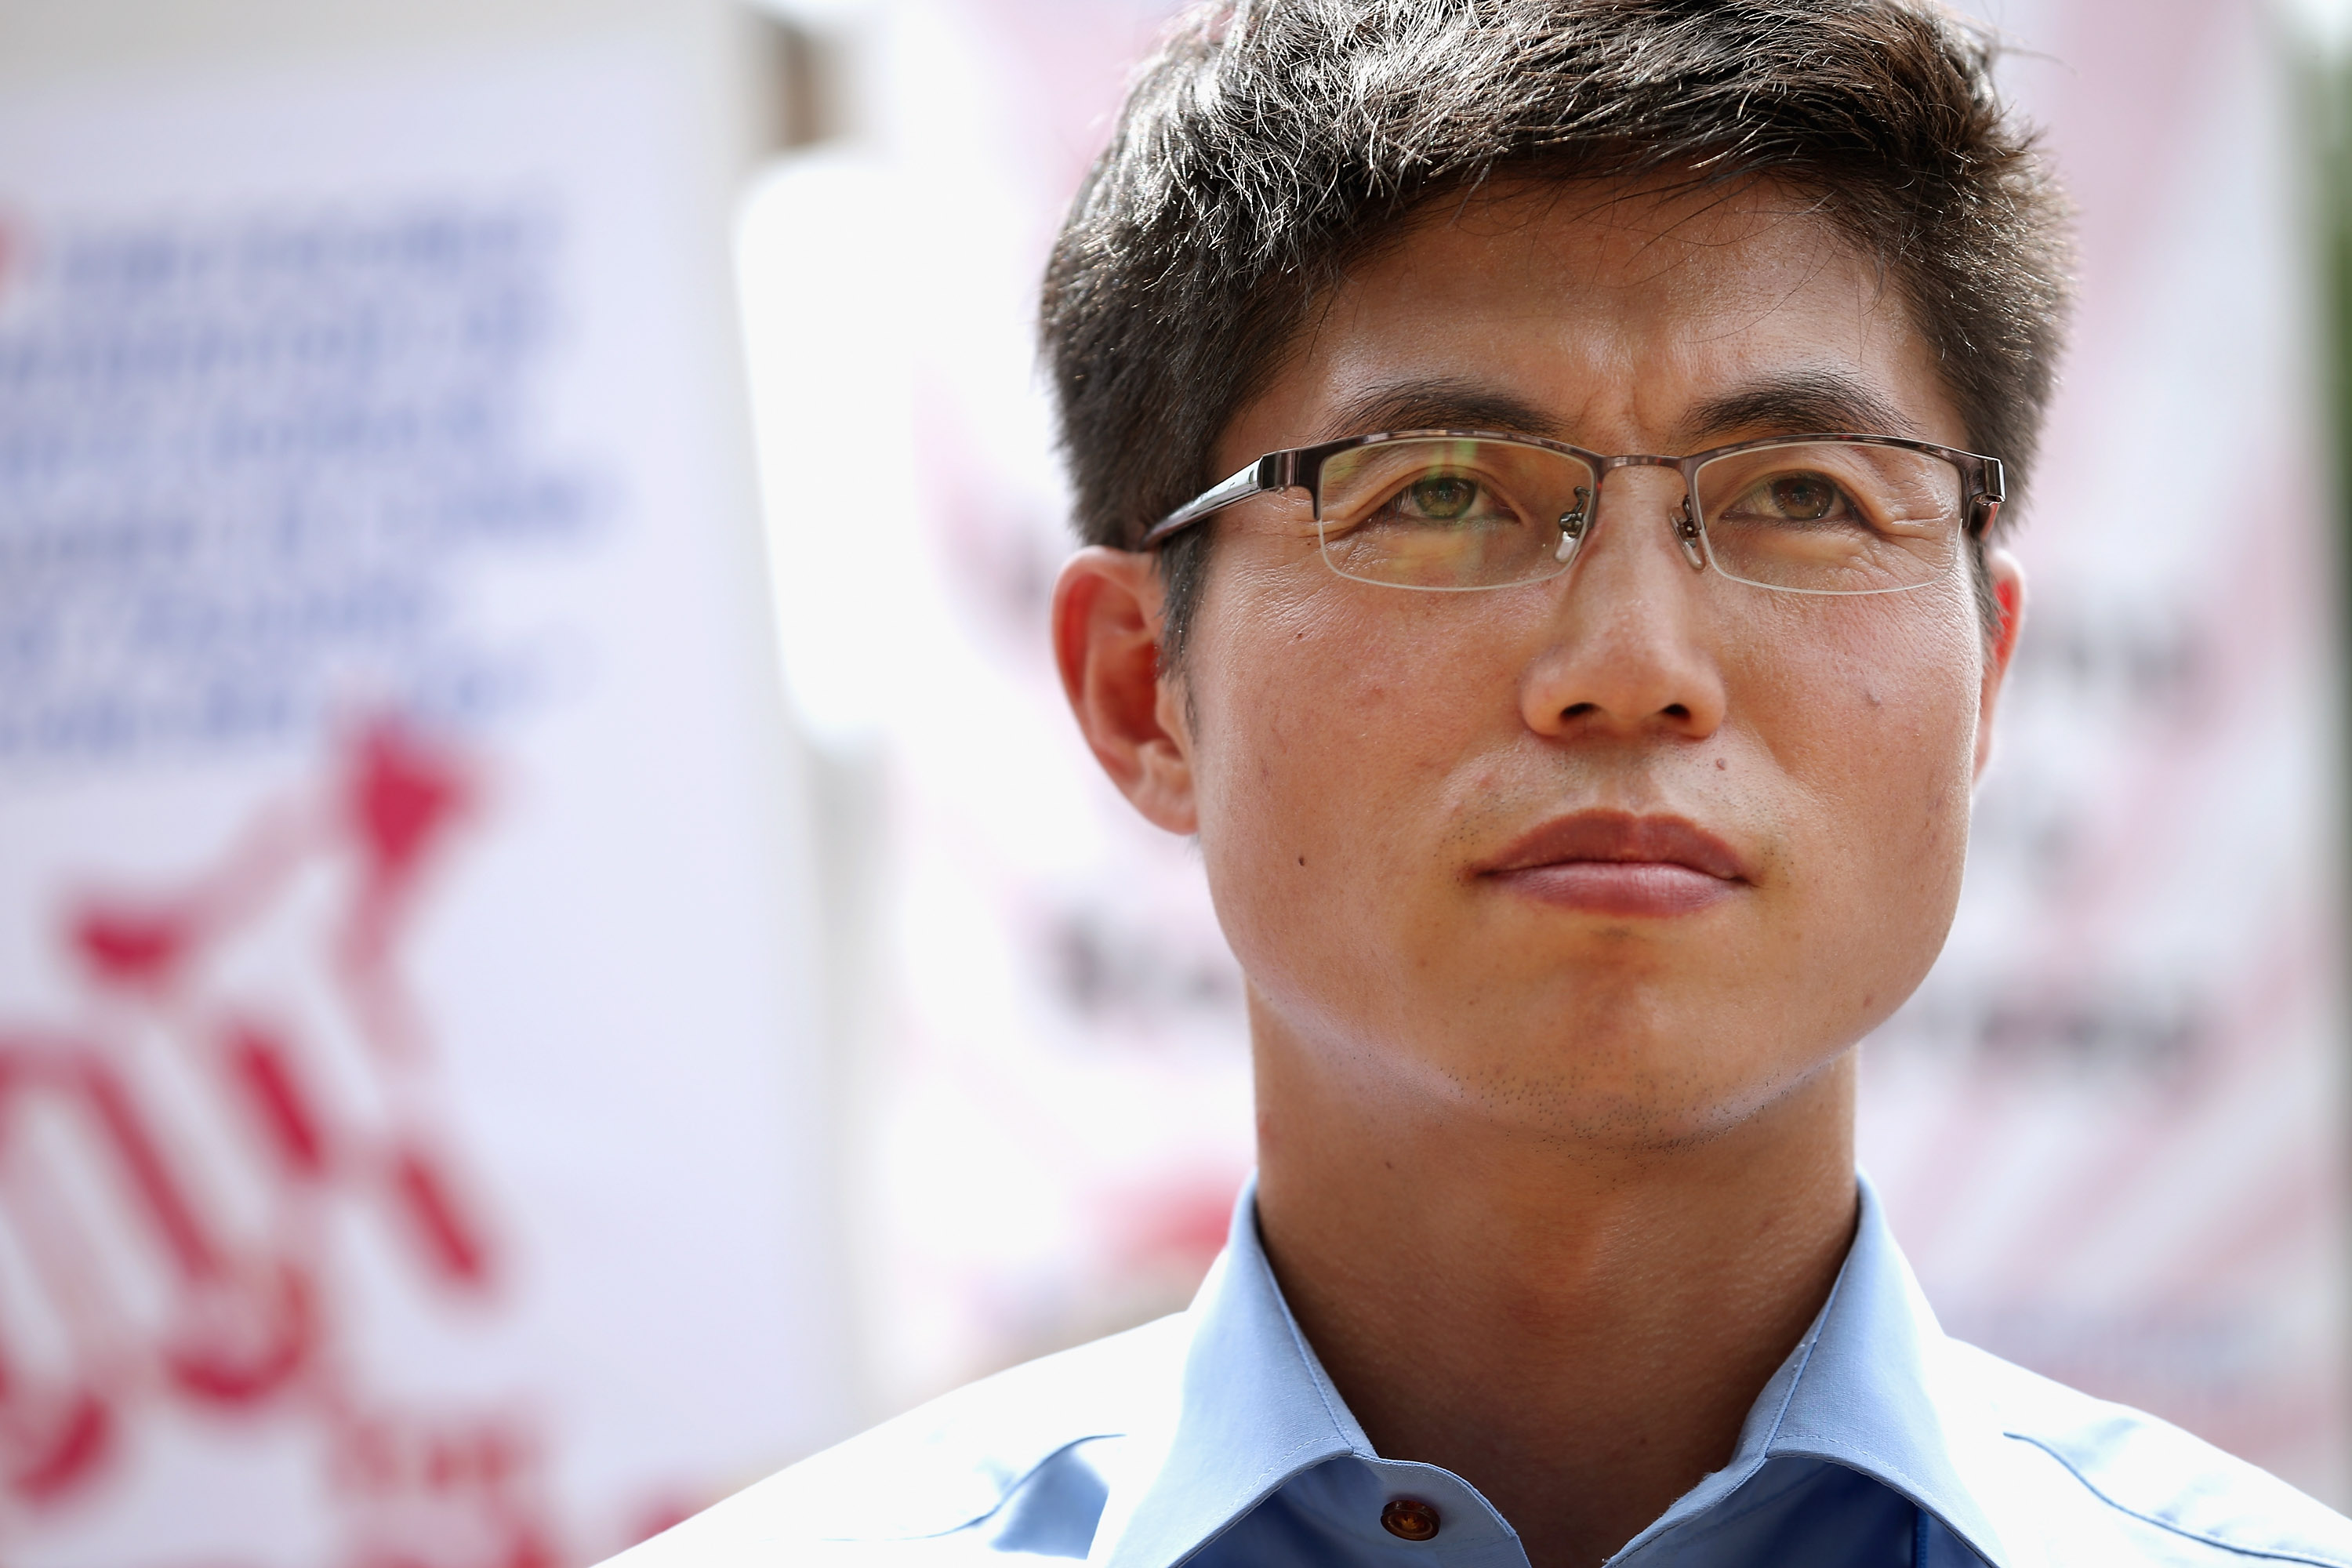 Dong-hyuk spent three days in Halifax. (Photo via the Foreign Policy Initiative)